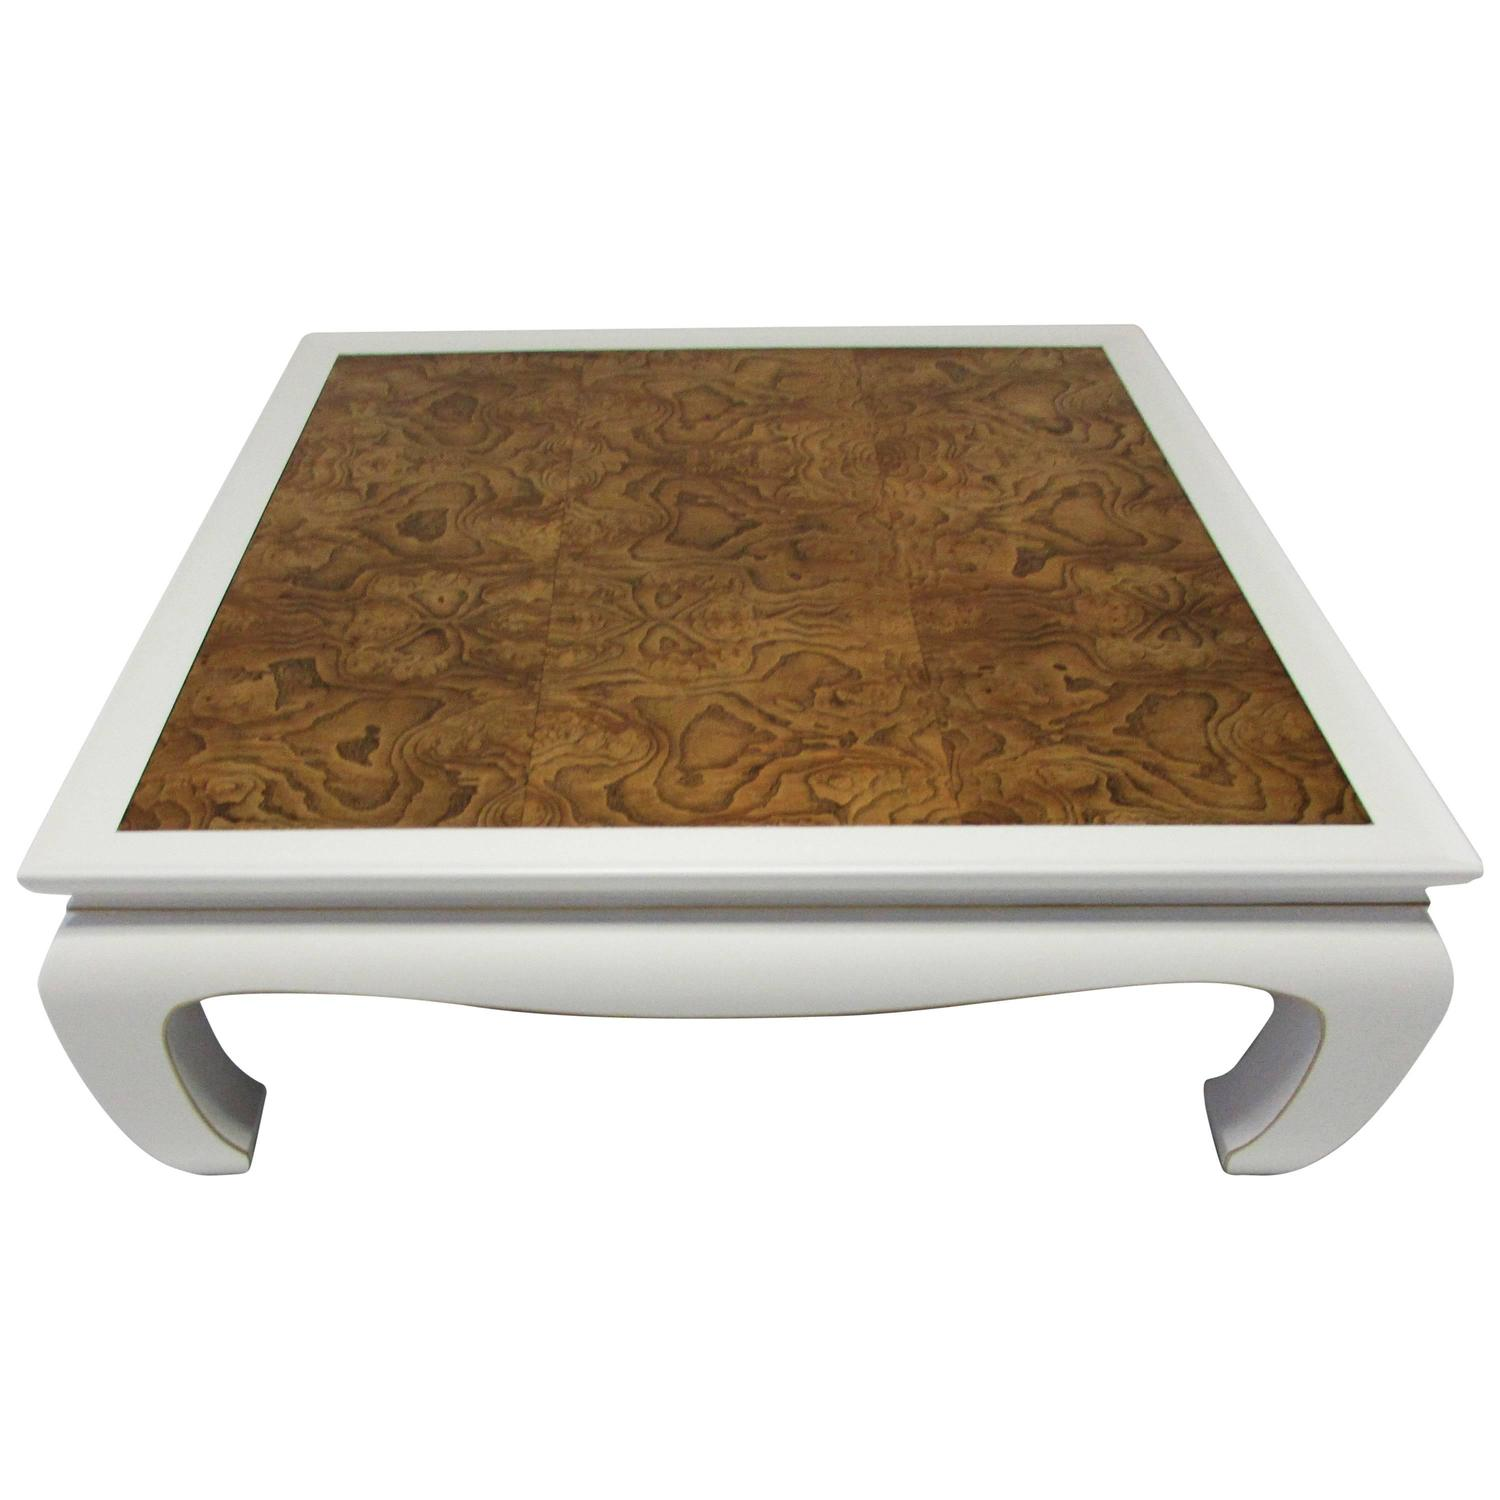 Ming Style Lacquer and Burl Wood Coffee Table at 1stdibs